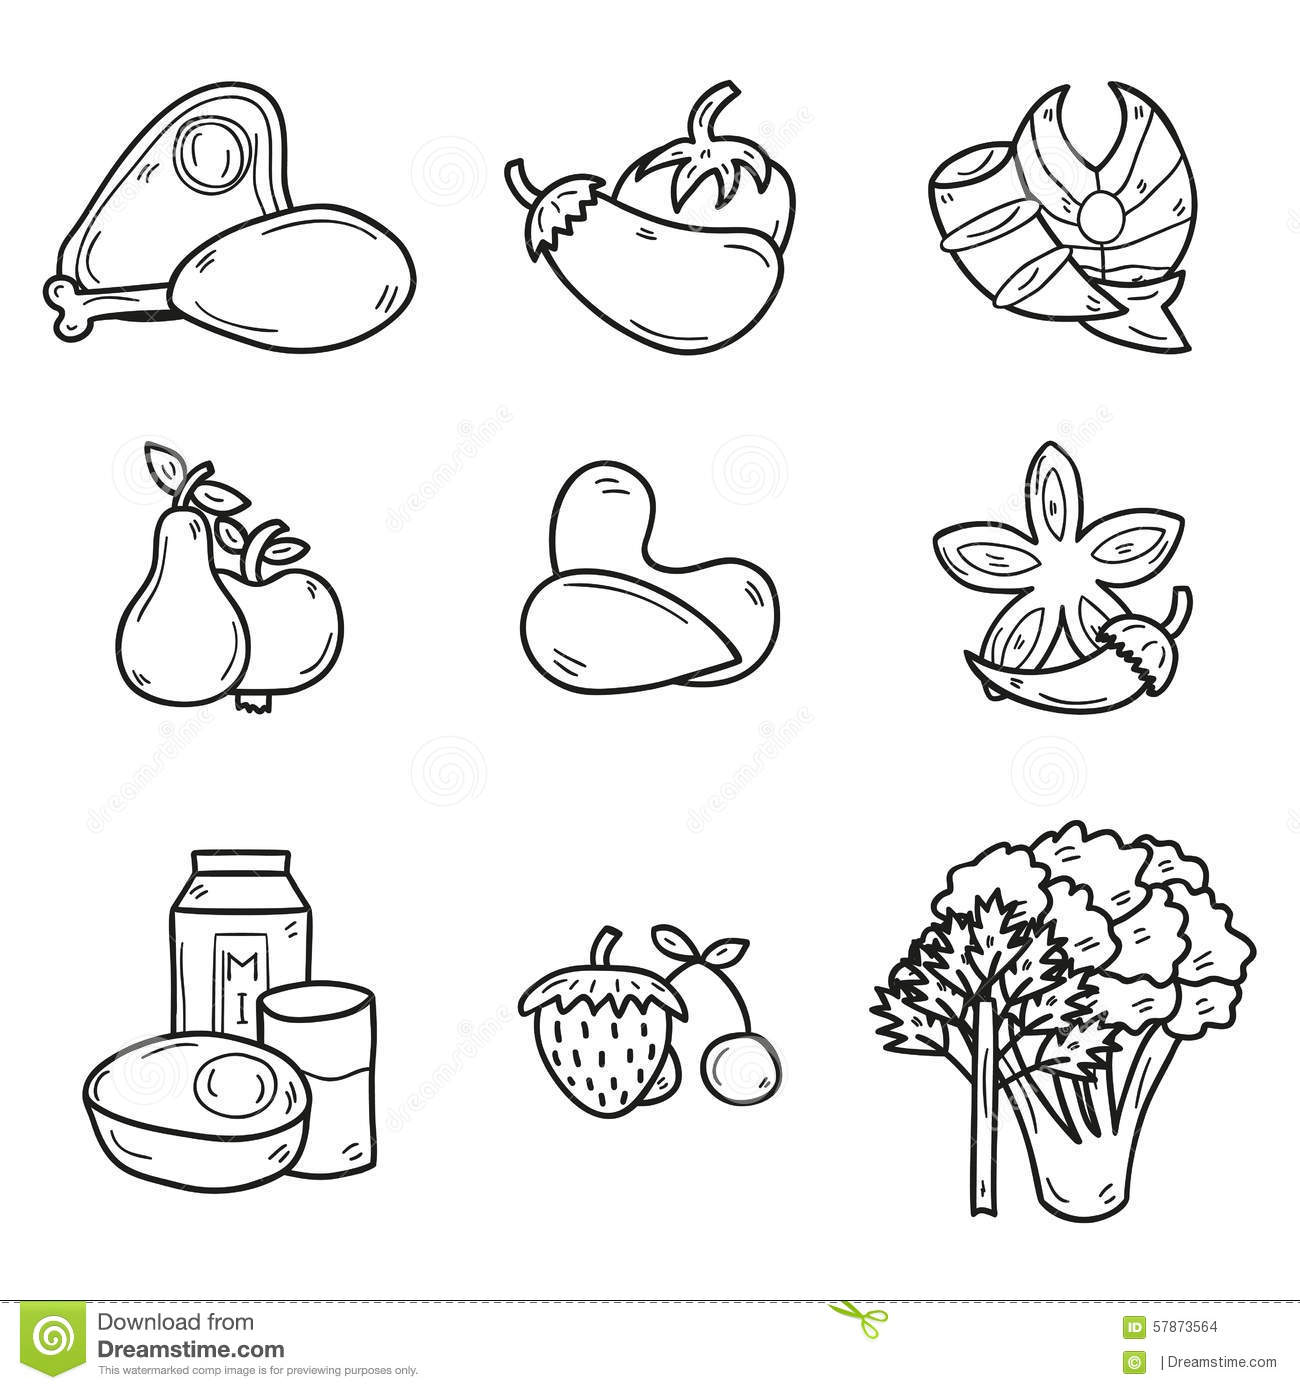 A To Z Fruits And Vegetables Coloring Pages